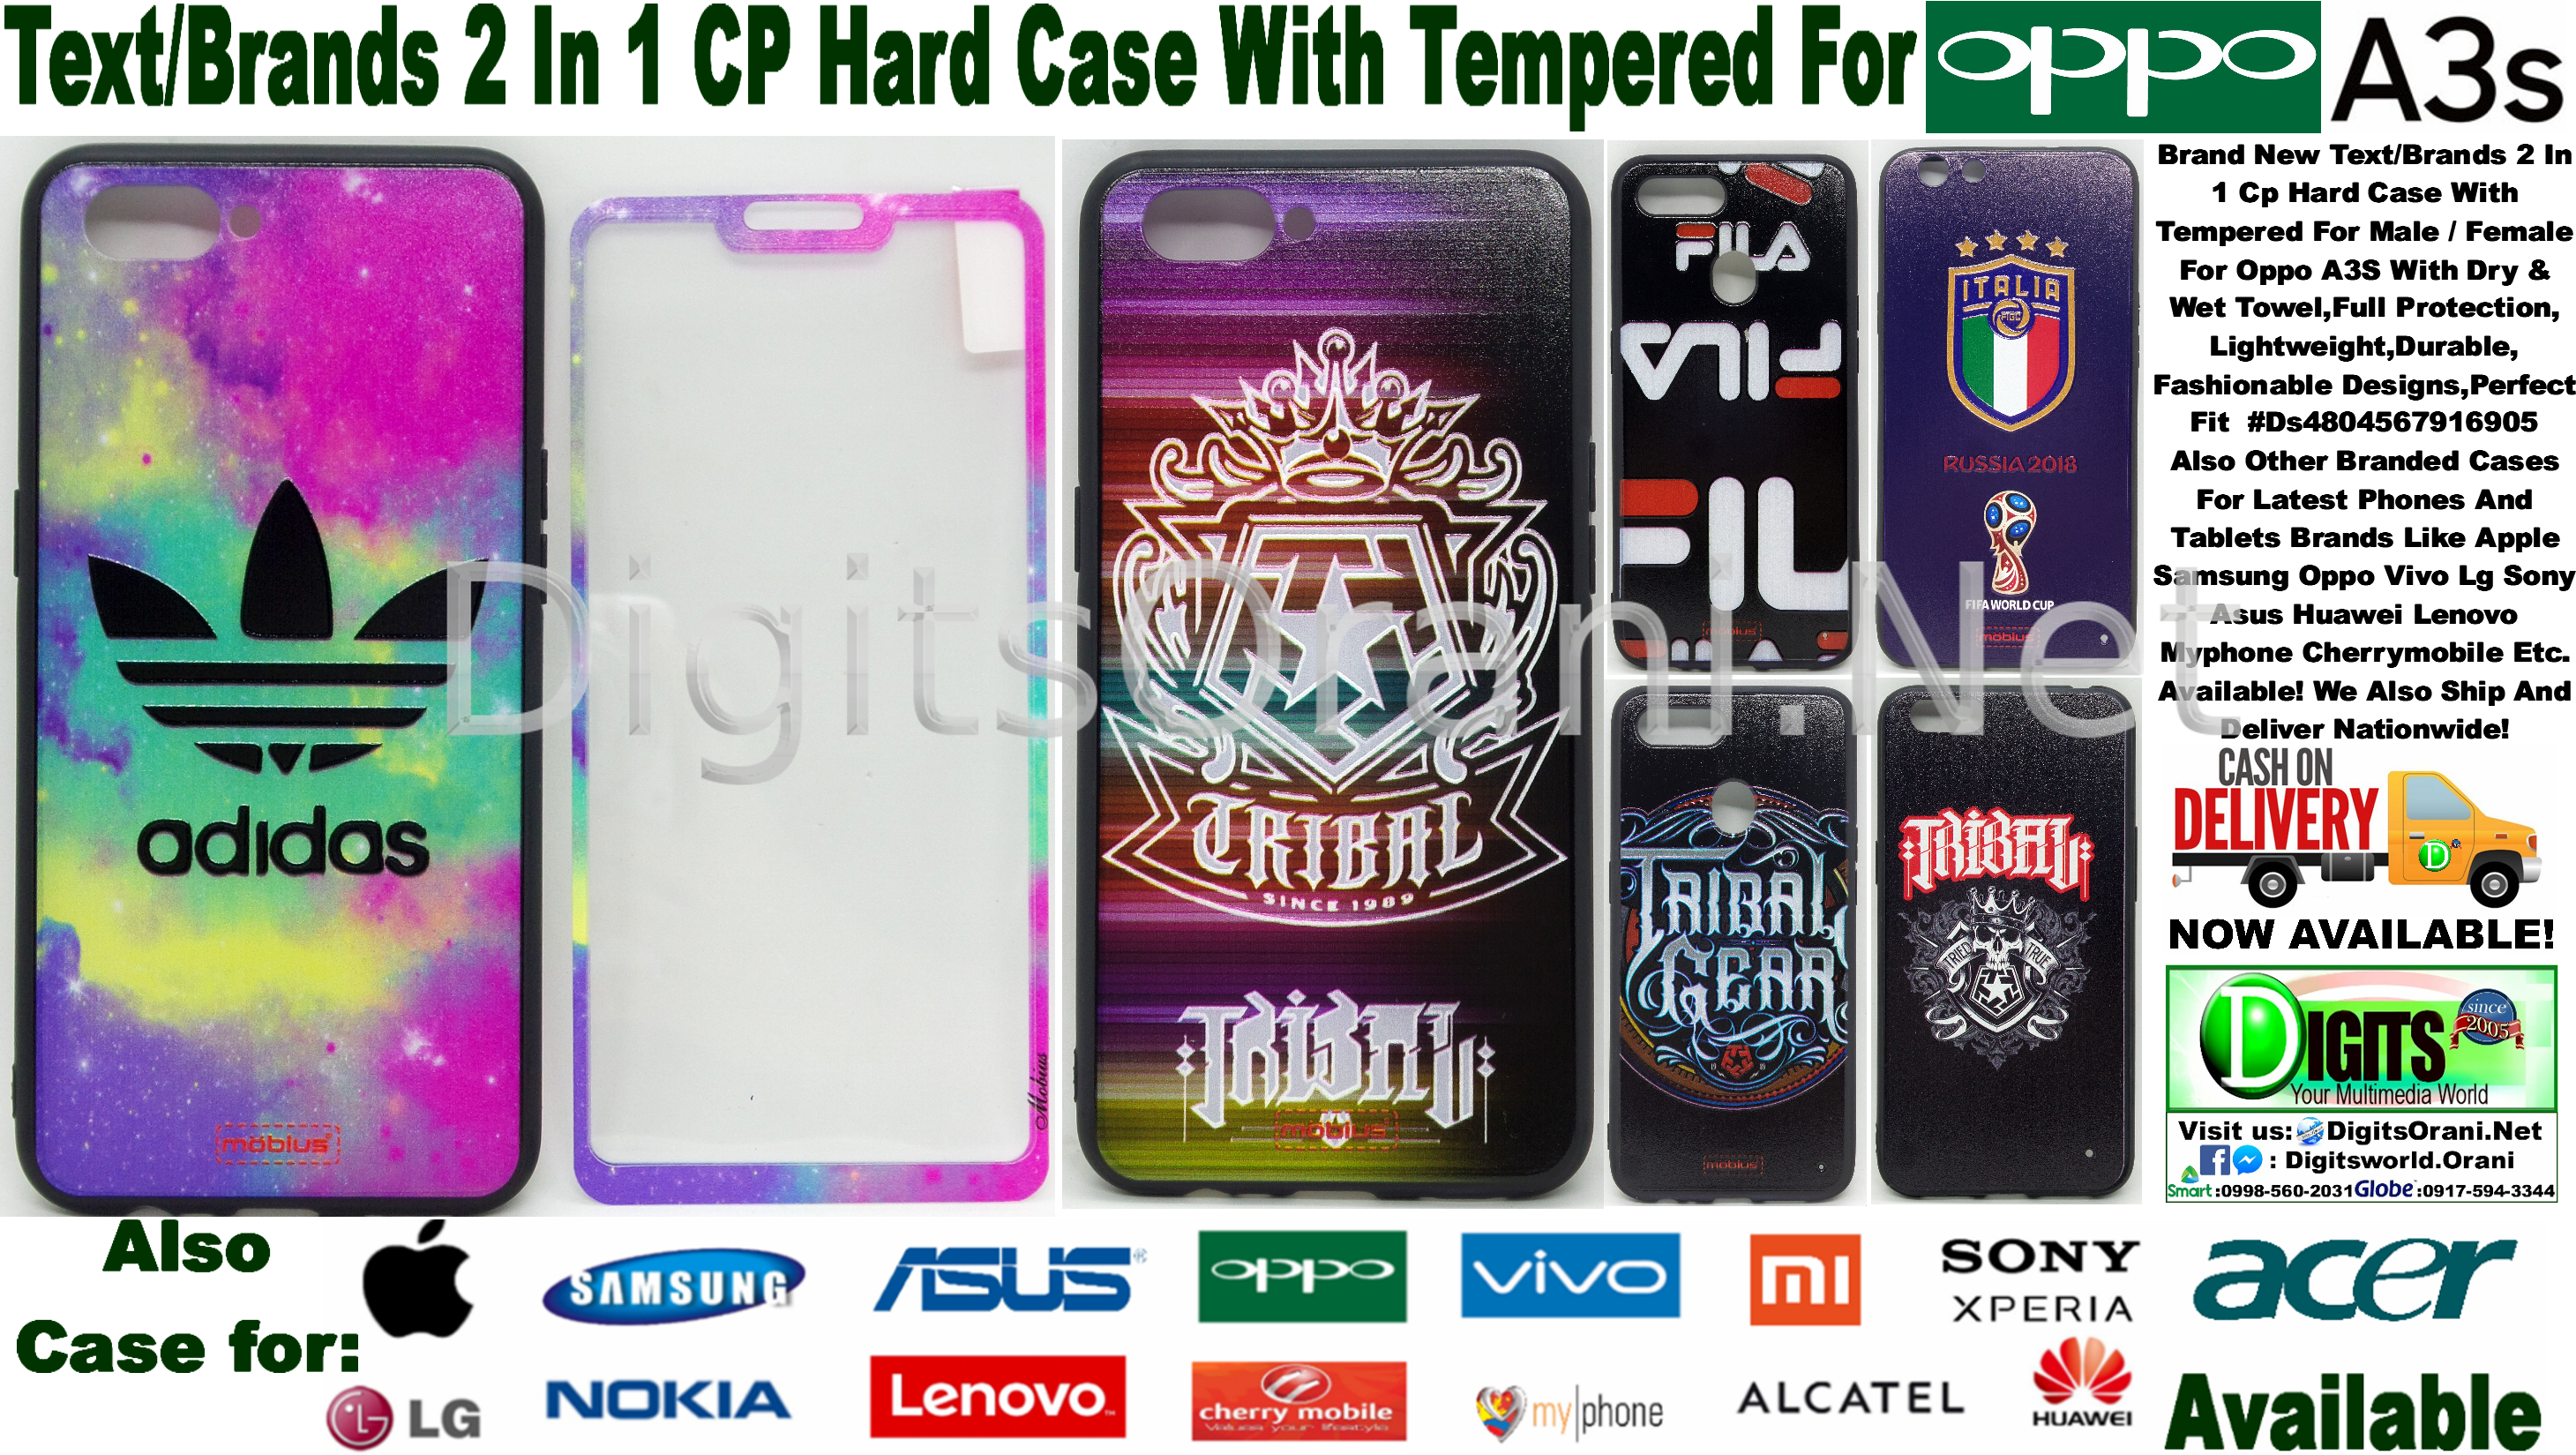 Text Brands 2 In 1 Cp Hard Case With Tempered For Male Female Headset Bluetooth Professional Samsung Sony Asus Xiaomi Oppo Lenovo Vivo Touch To Zoom